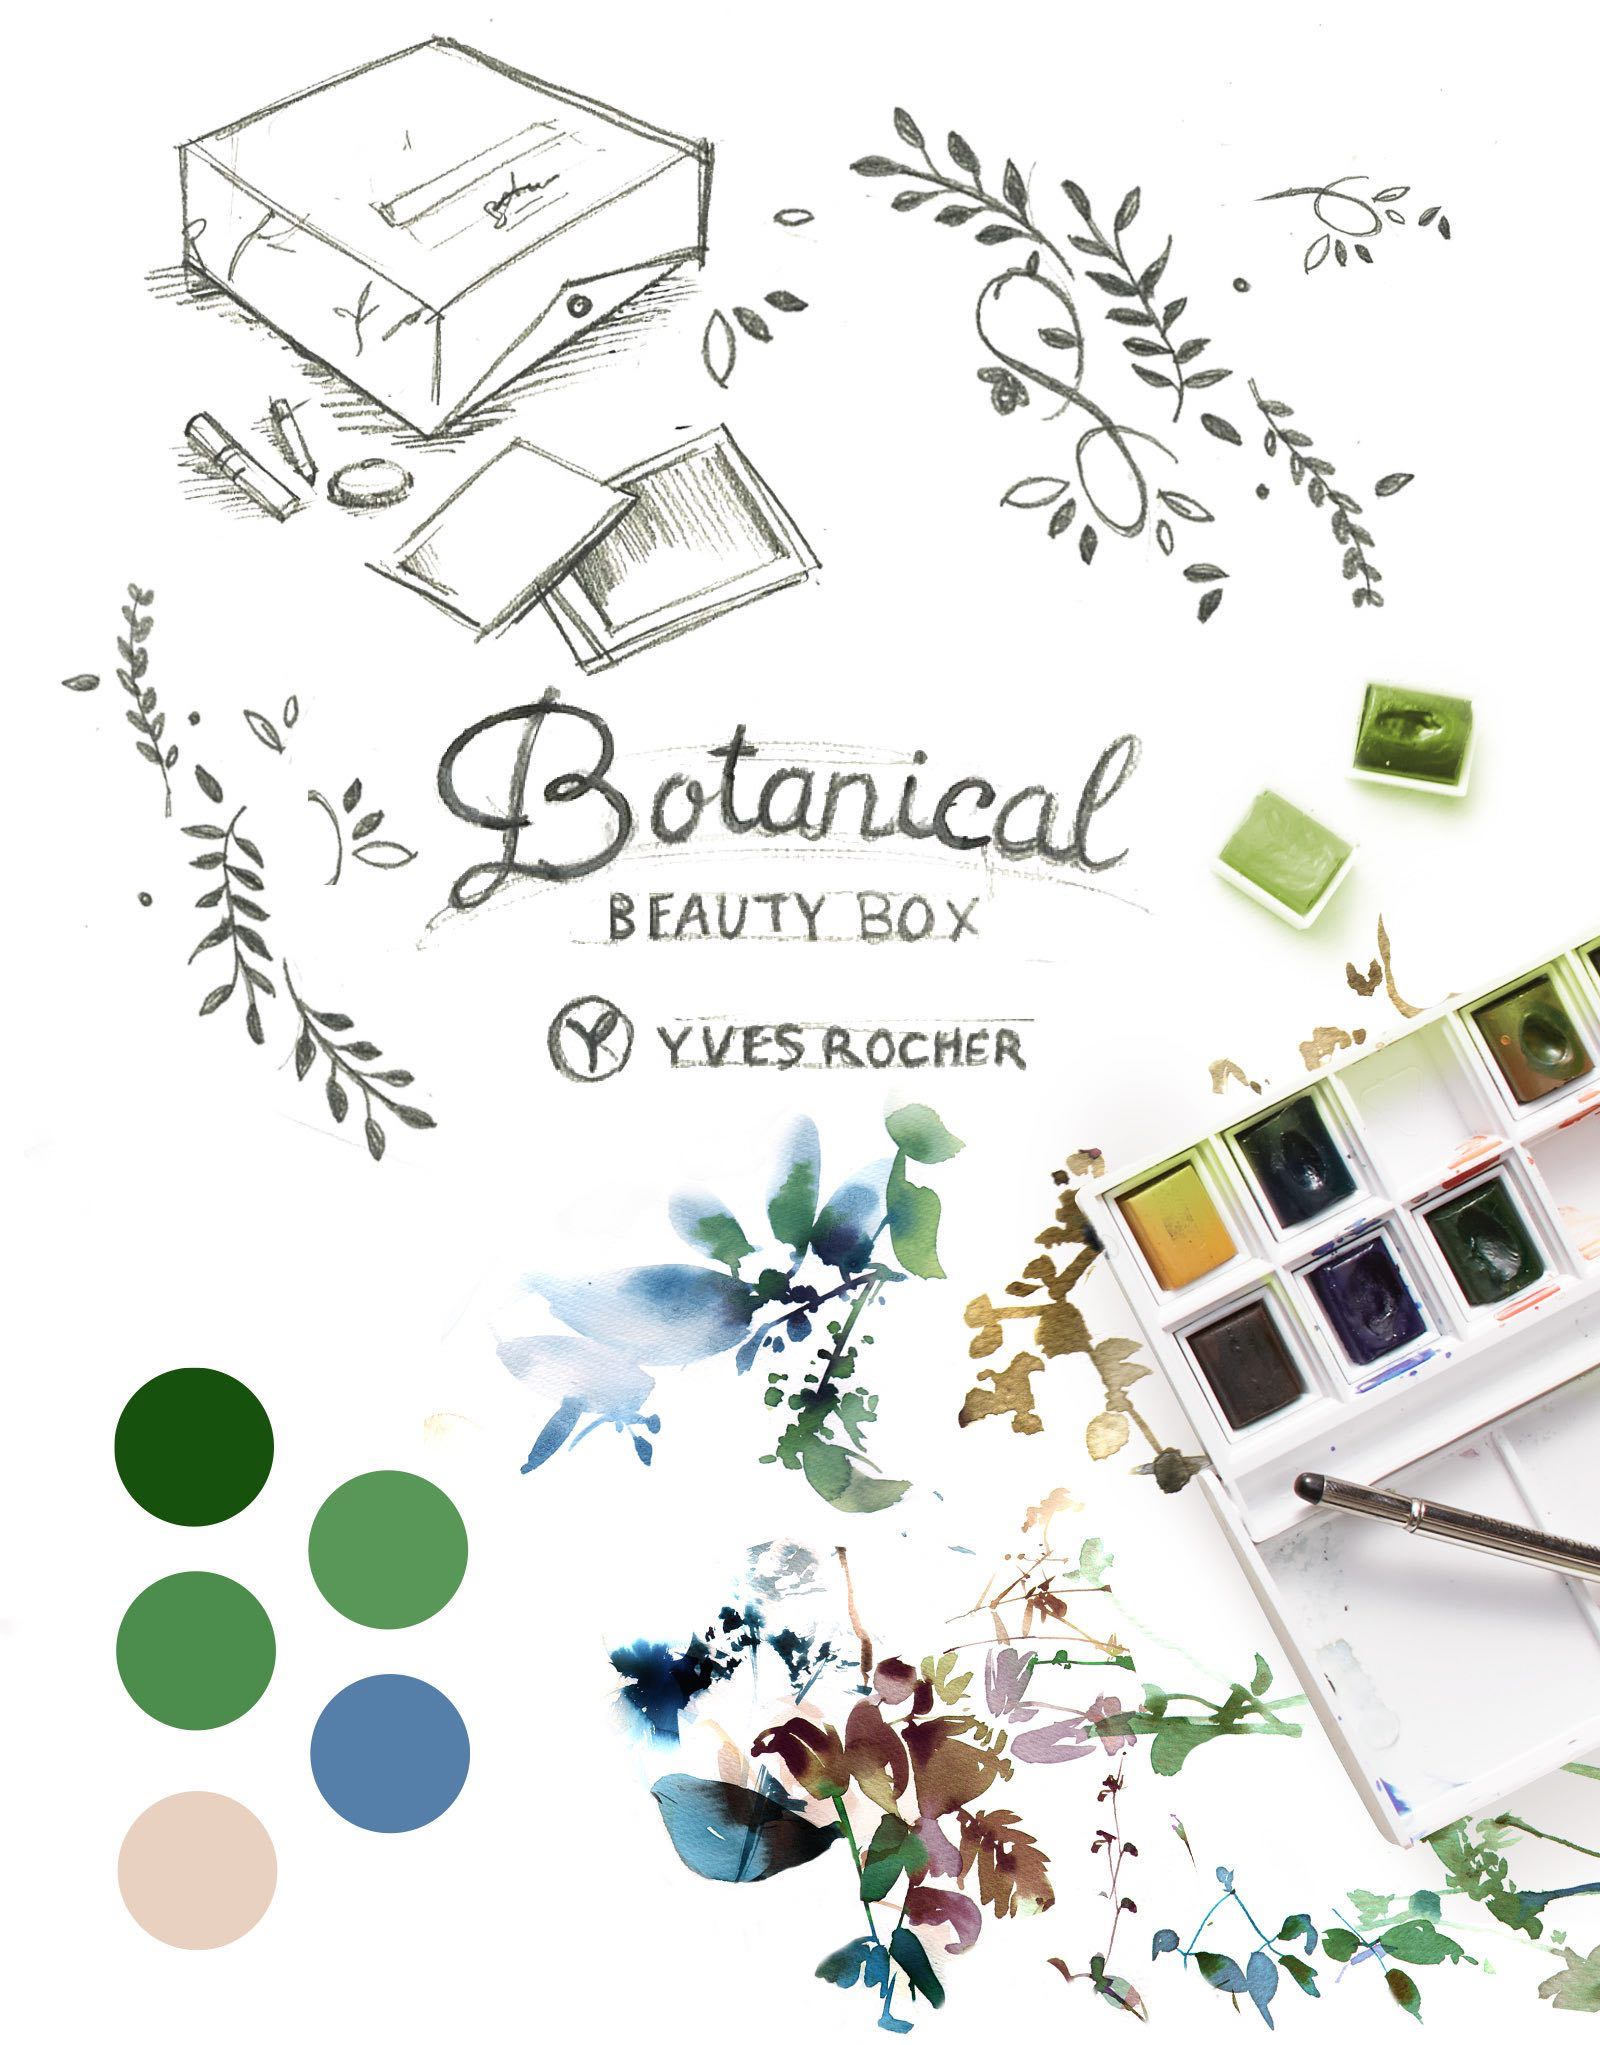 Charte graphique Botanical Yves Rocher Notchup